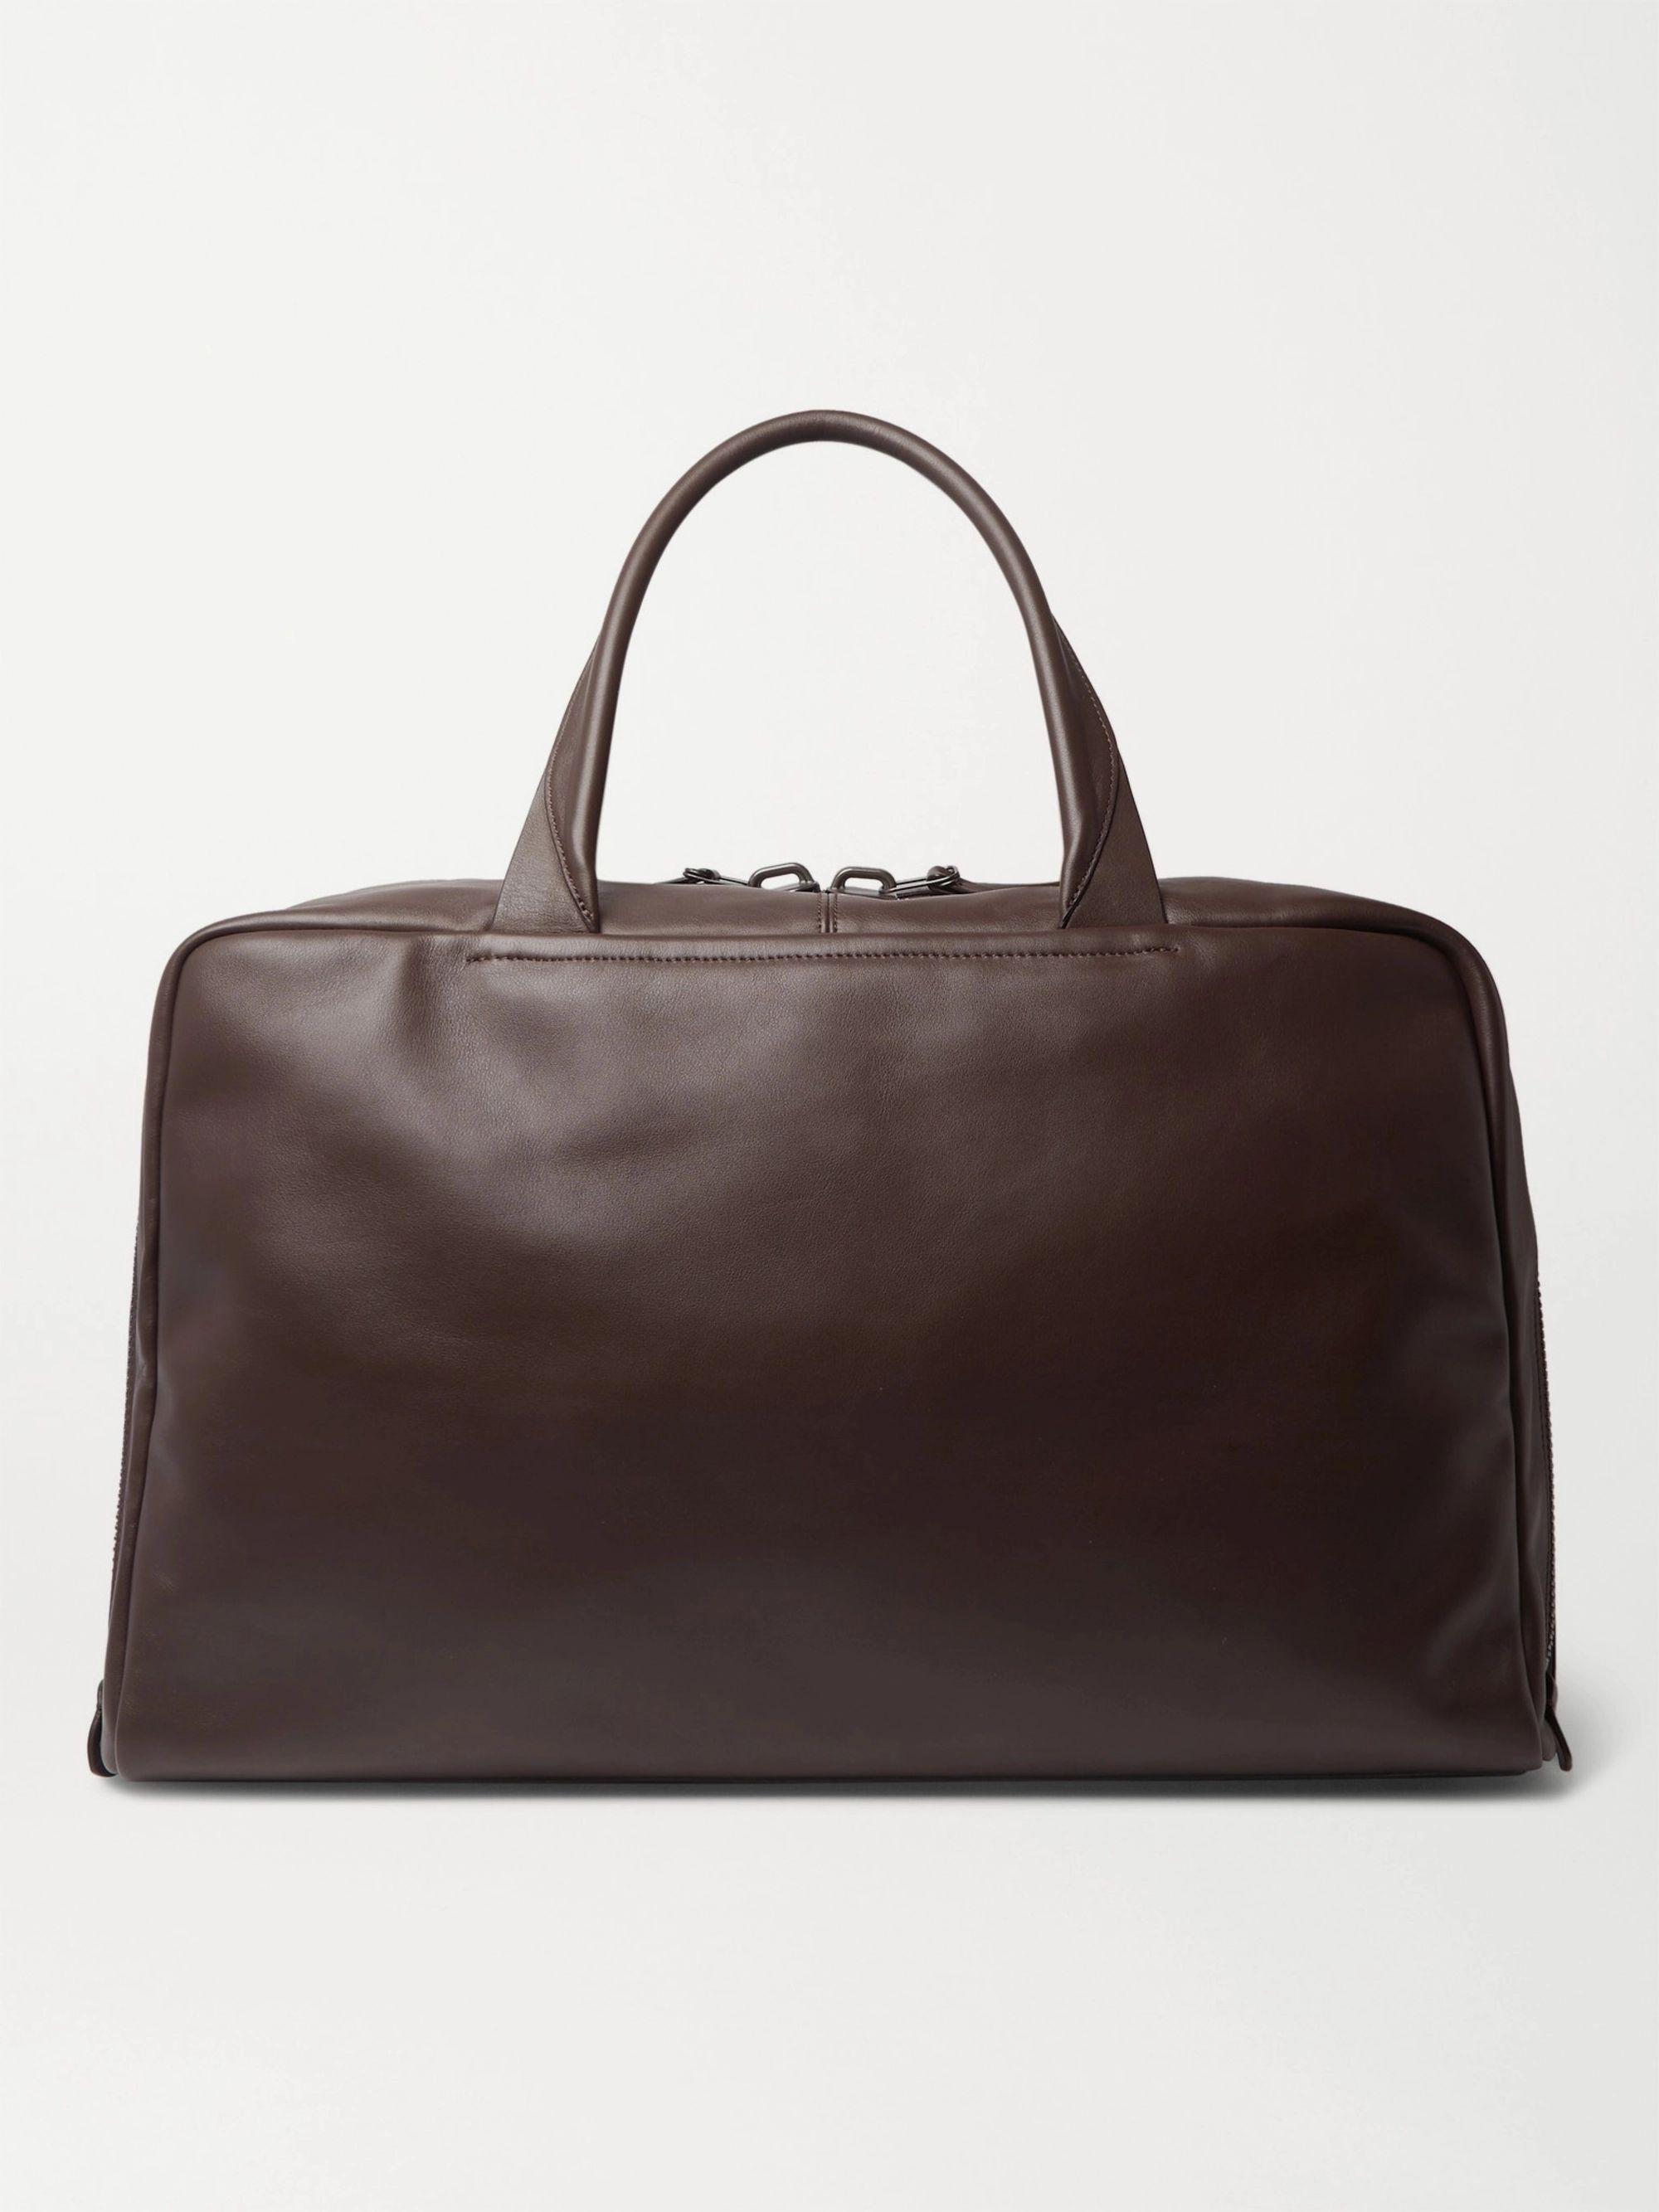 Álvaro Álvaro 47 Leather-Trimmed Canvas Holdall